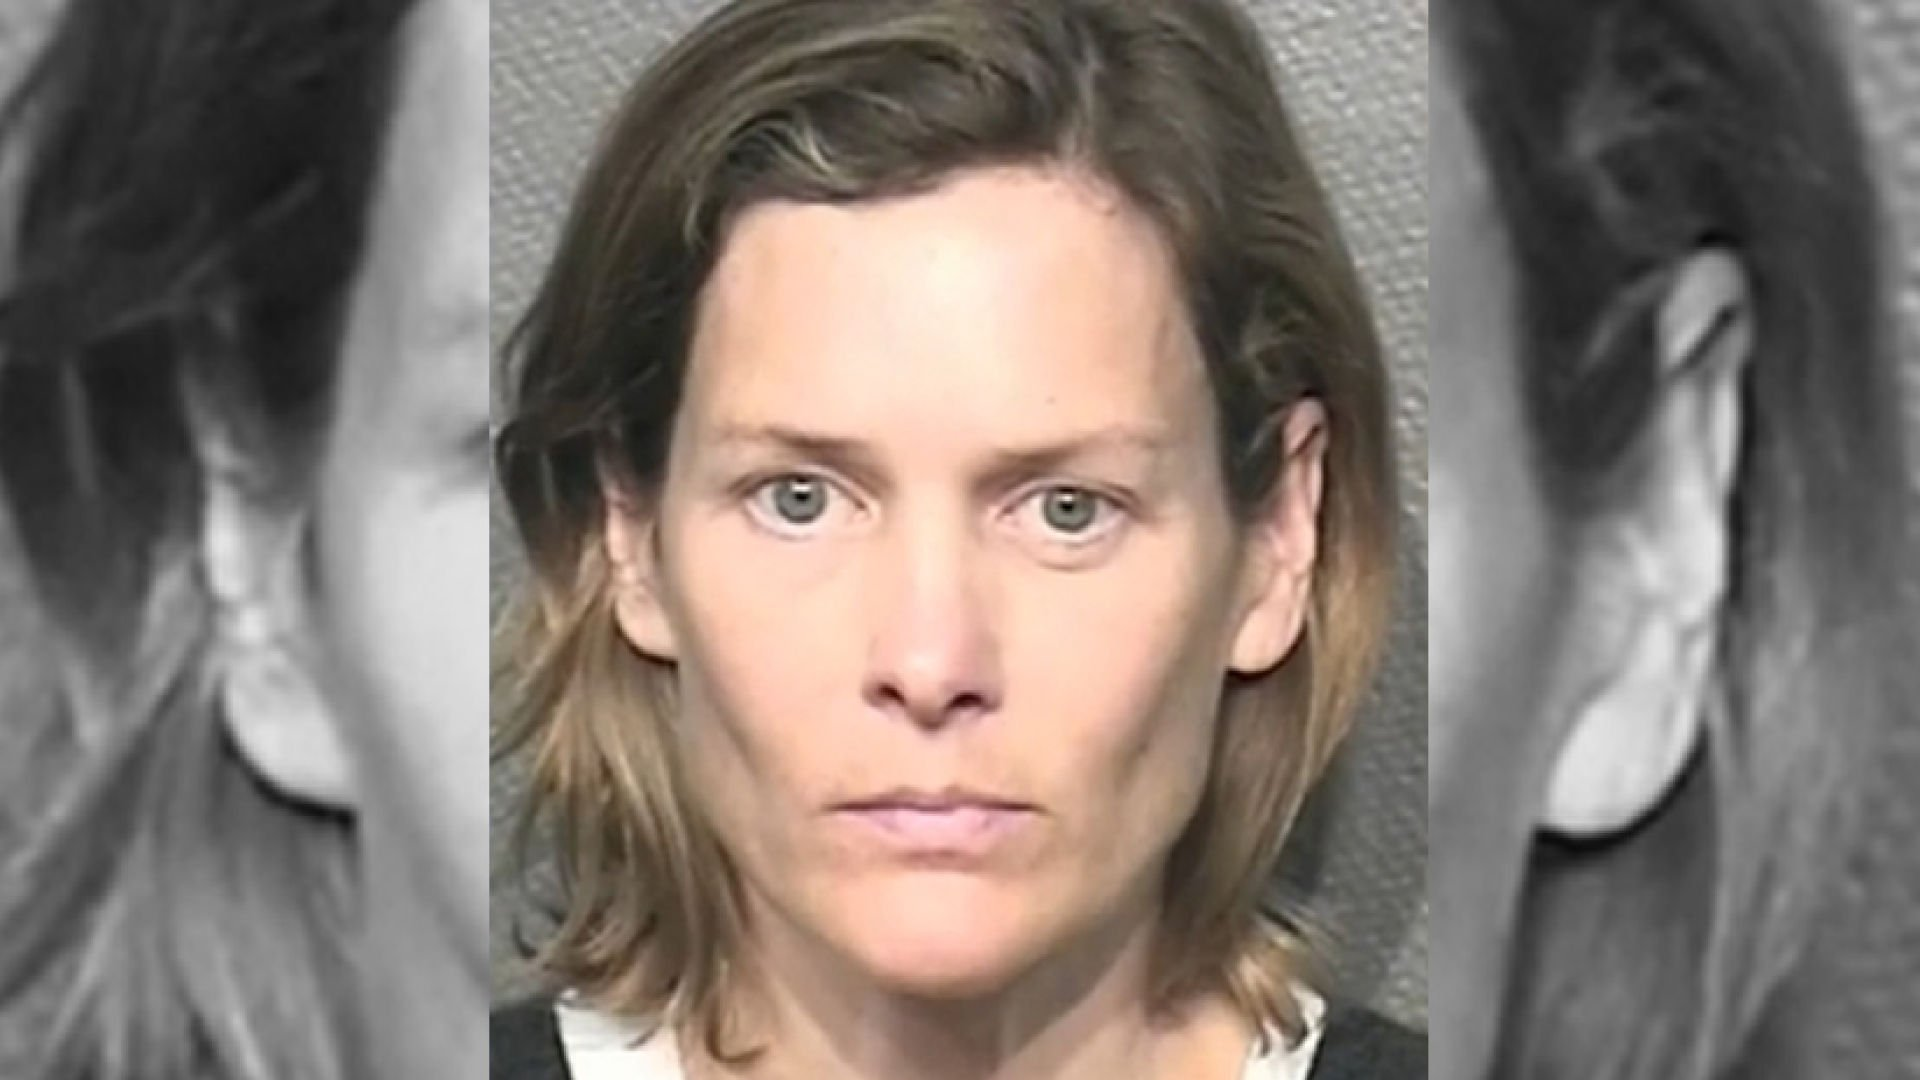 Valerie McDaniel committed suicide amid investigation into murder for hire charges. (KPRC)